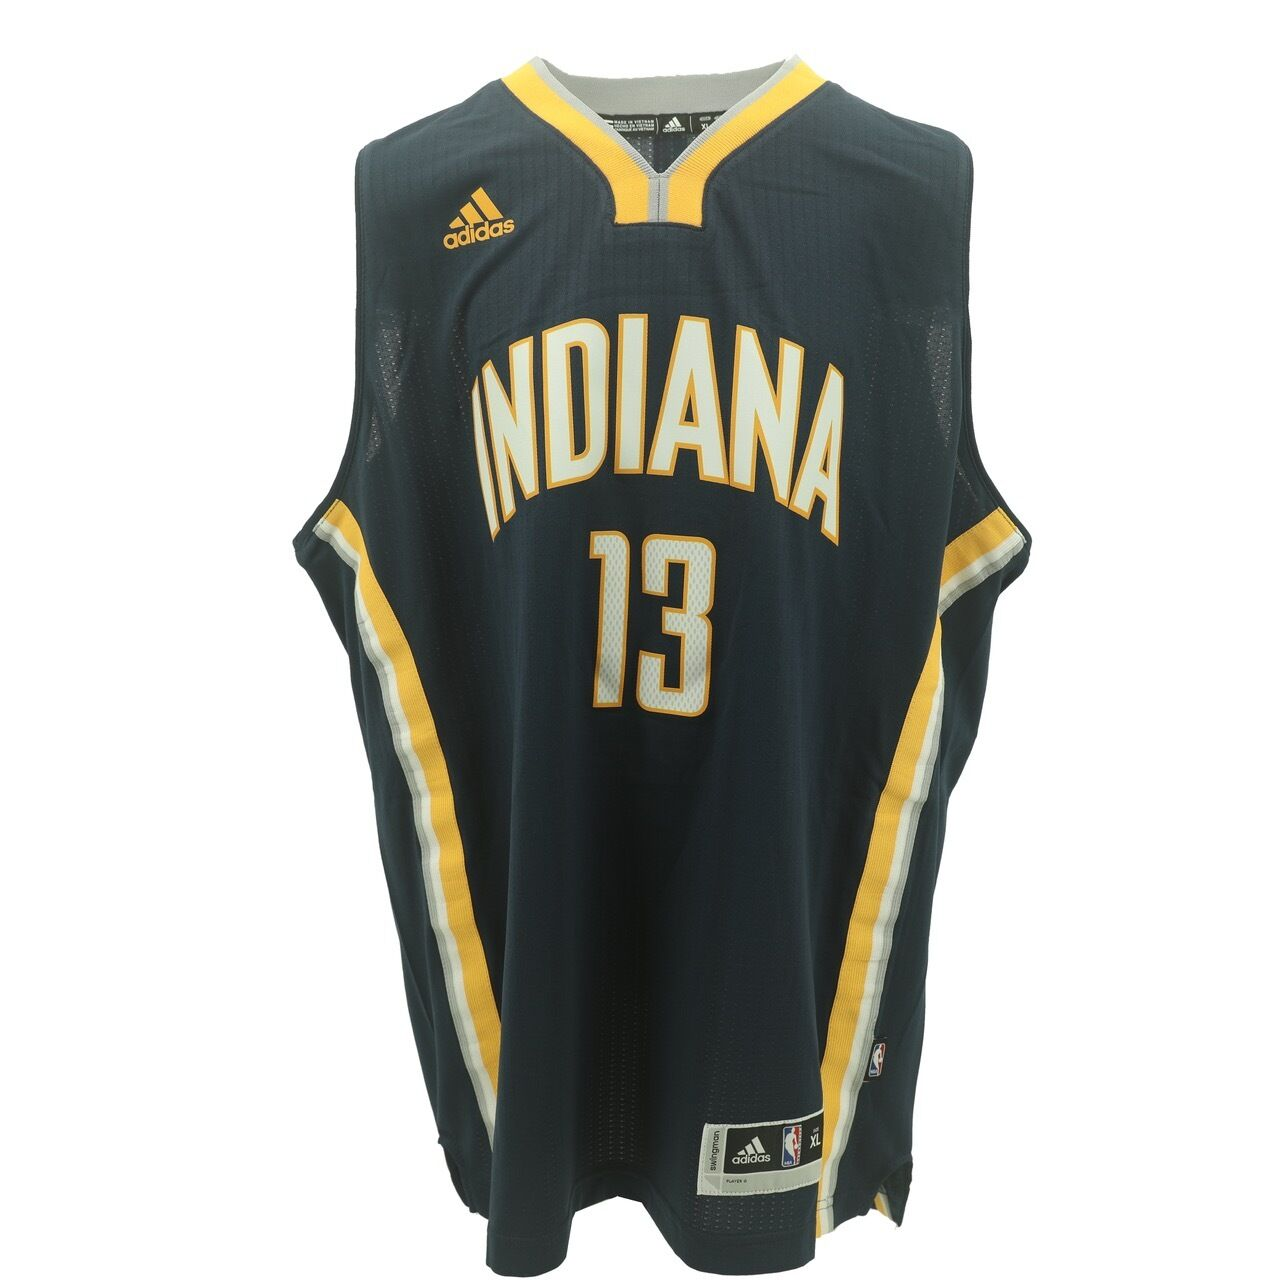 ed95d4a36ce42 Details about Indiana Pacers Youth Size Paul George #13 Adidas Swingman  Jersey +2